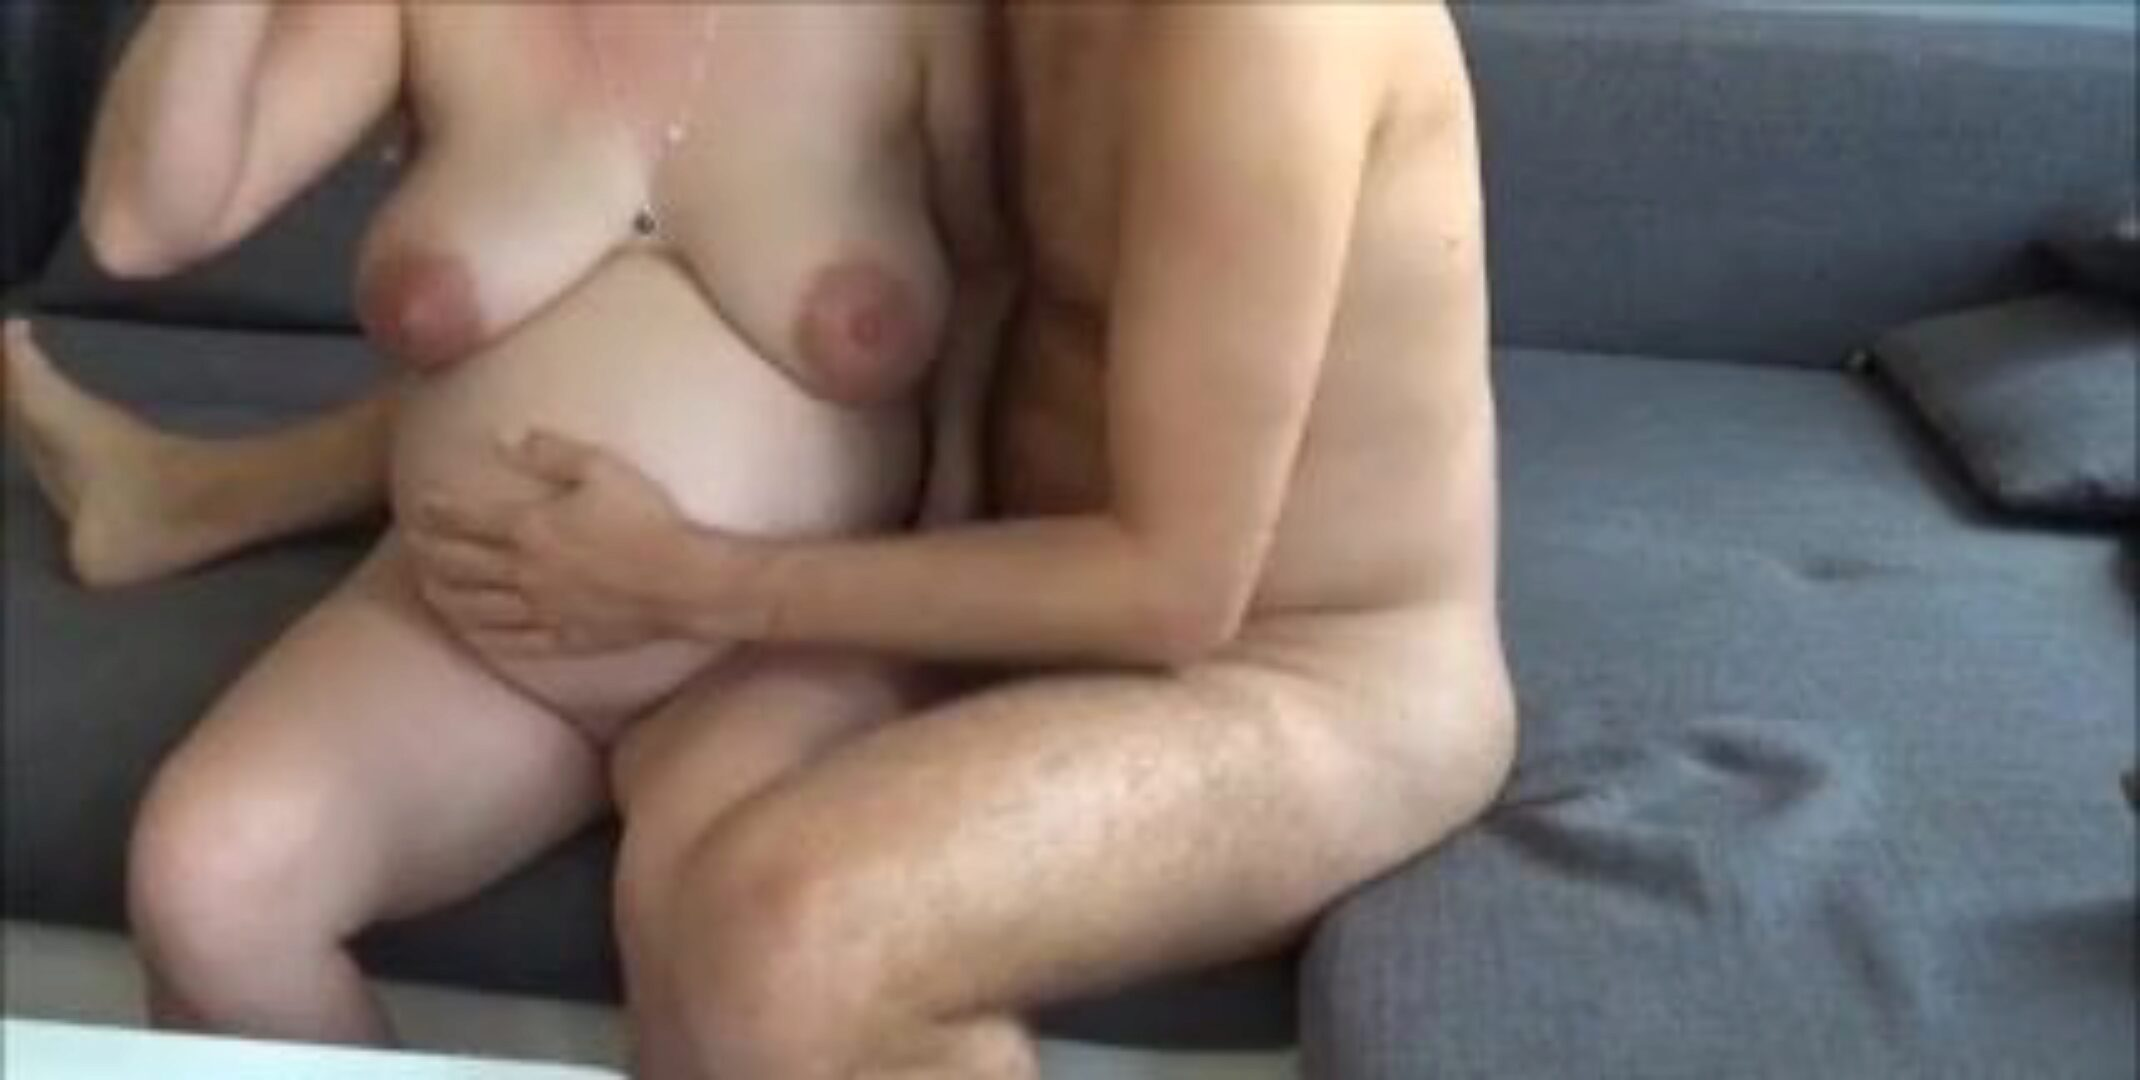 39th Week Pregnant - Fucked Again with a Stranger: Porn sixty nine Watch 39th Week Pregnant - Fucked Again with a Stranger movie on xHamster - the ultimate database of free German mother I'd like to fuck hard-core porno tube movie scenes